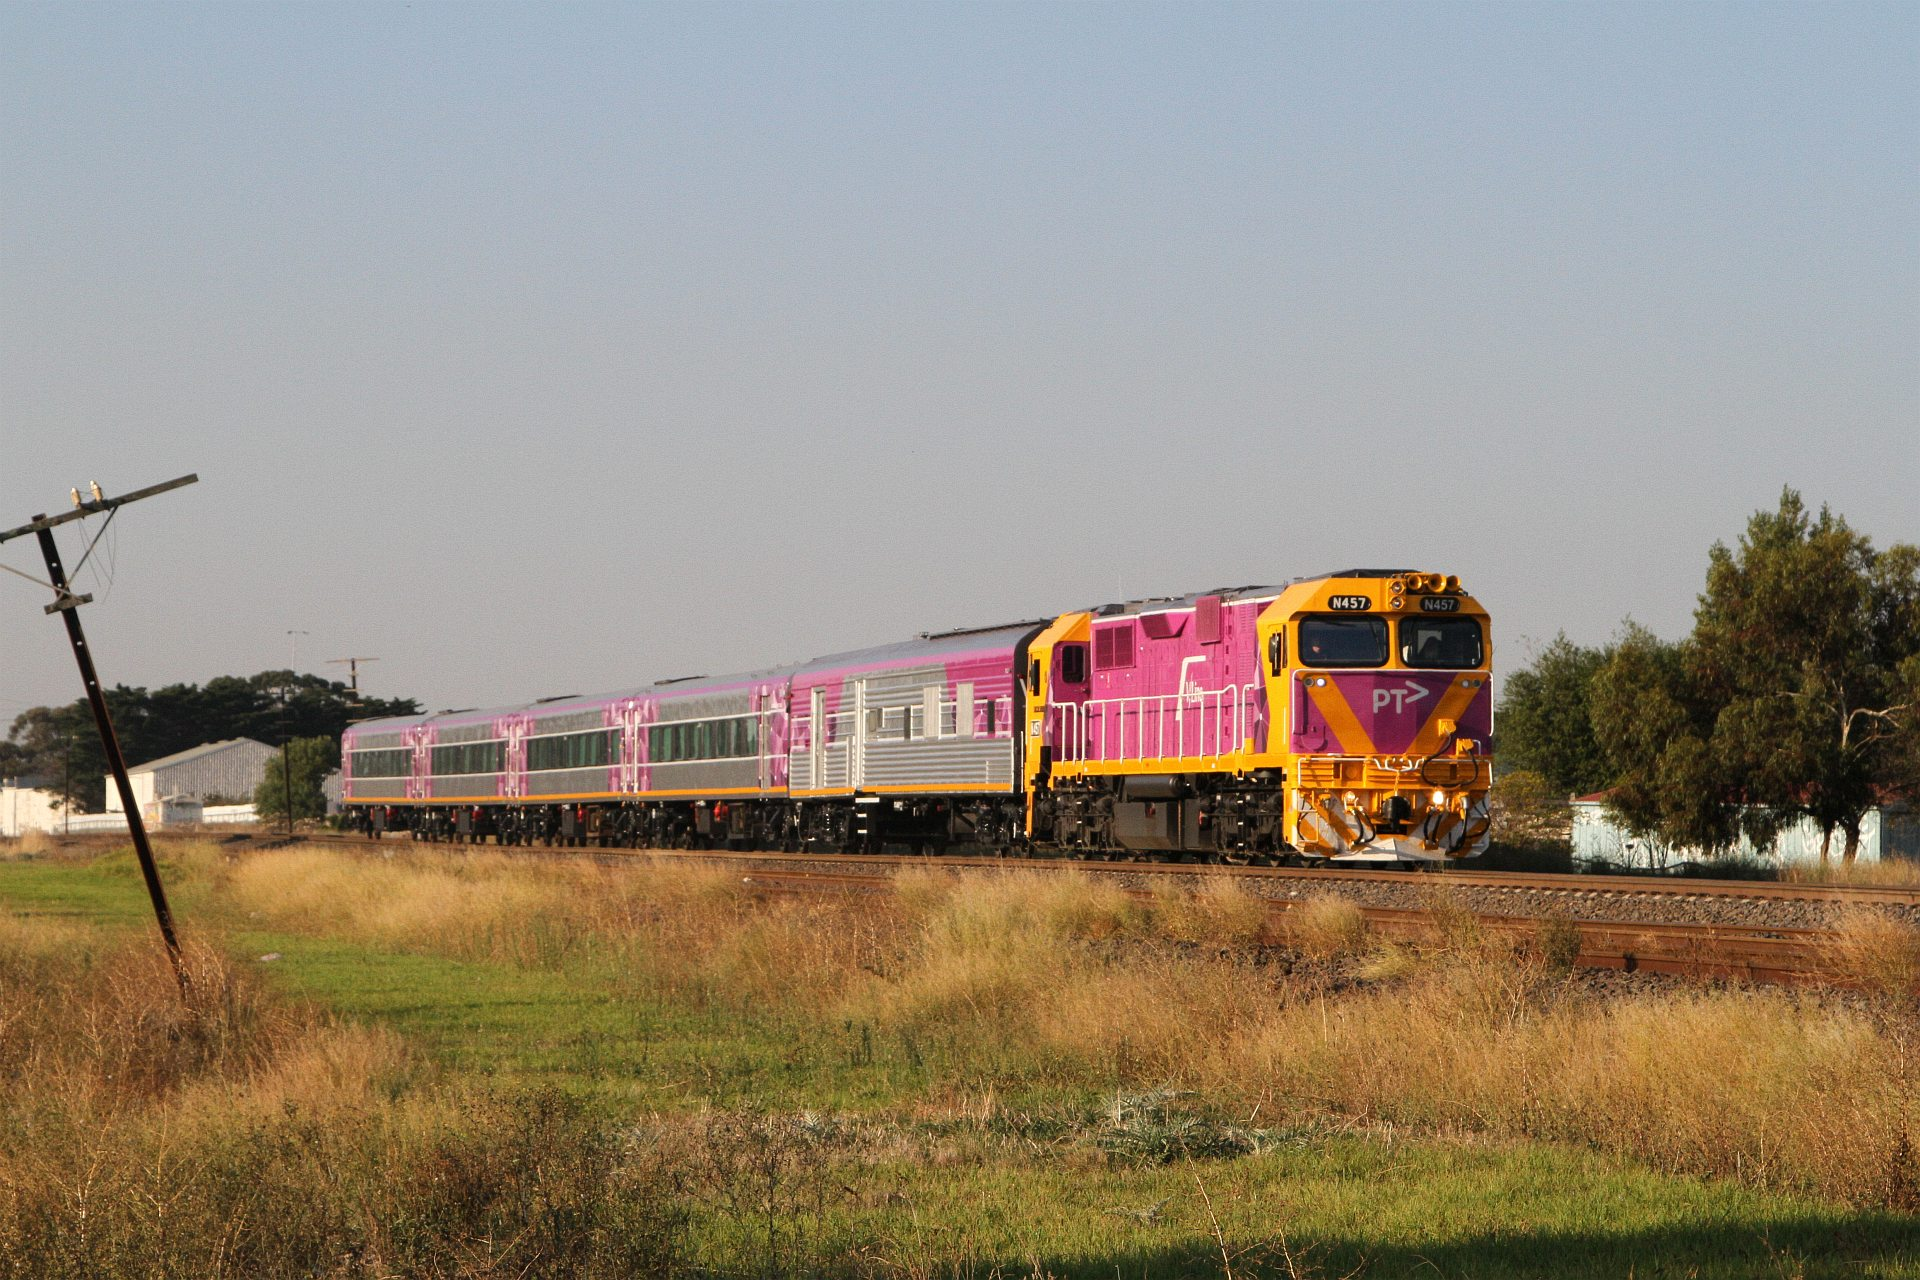 V Line S Fourth Train For Albury Has Anything Changed Waking Up In Geelong